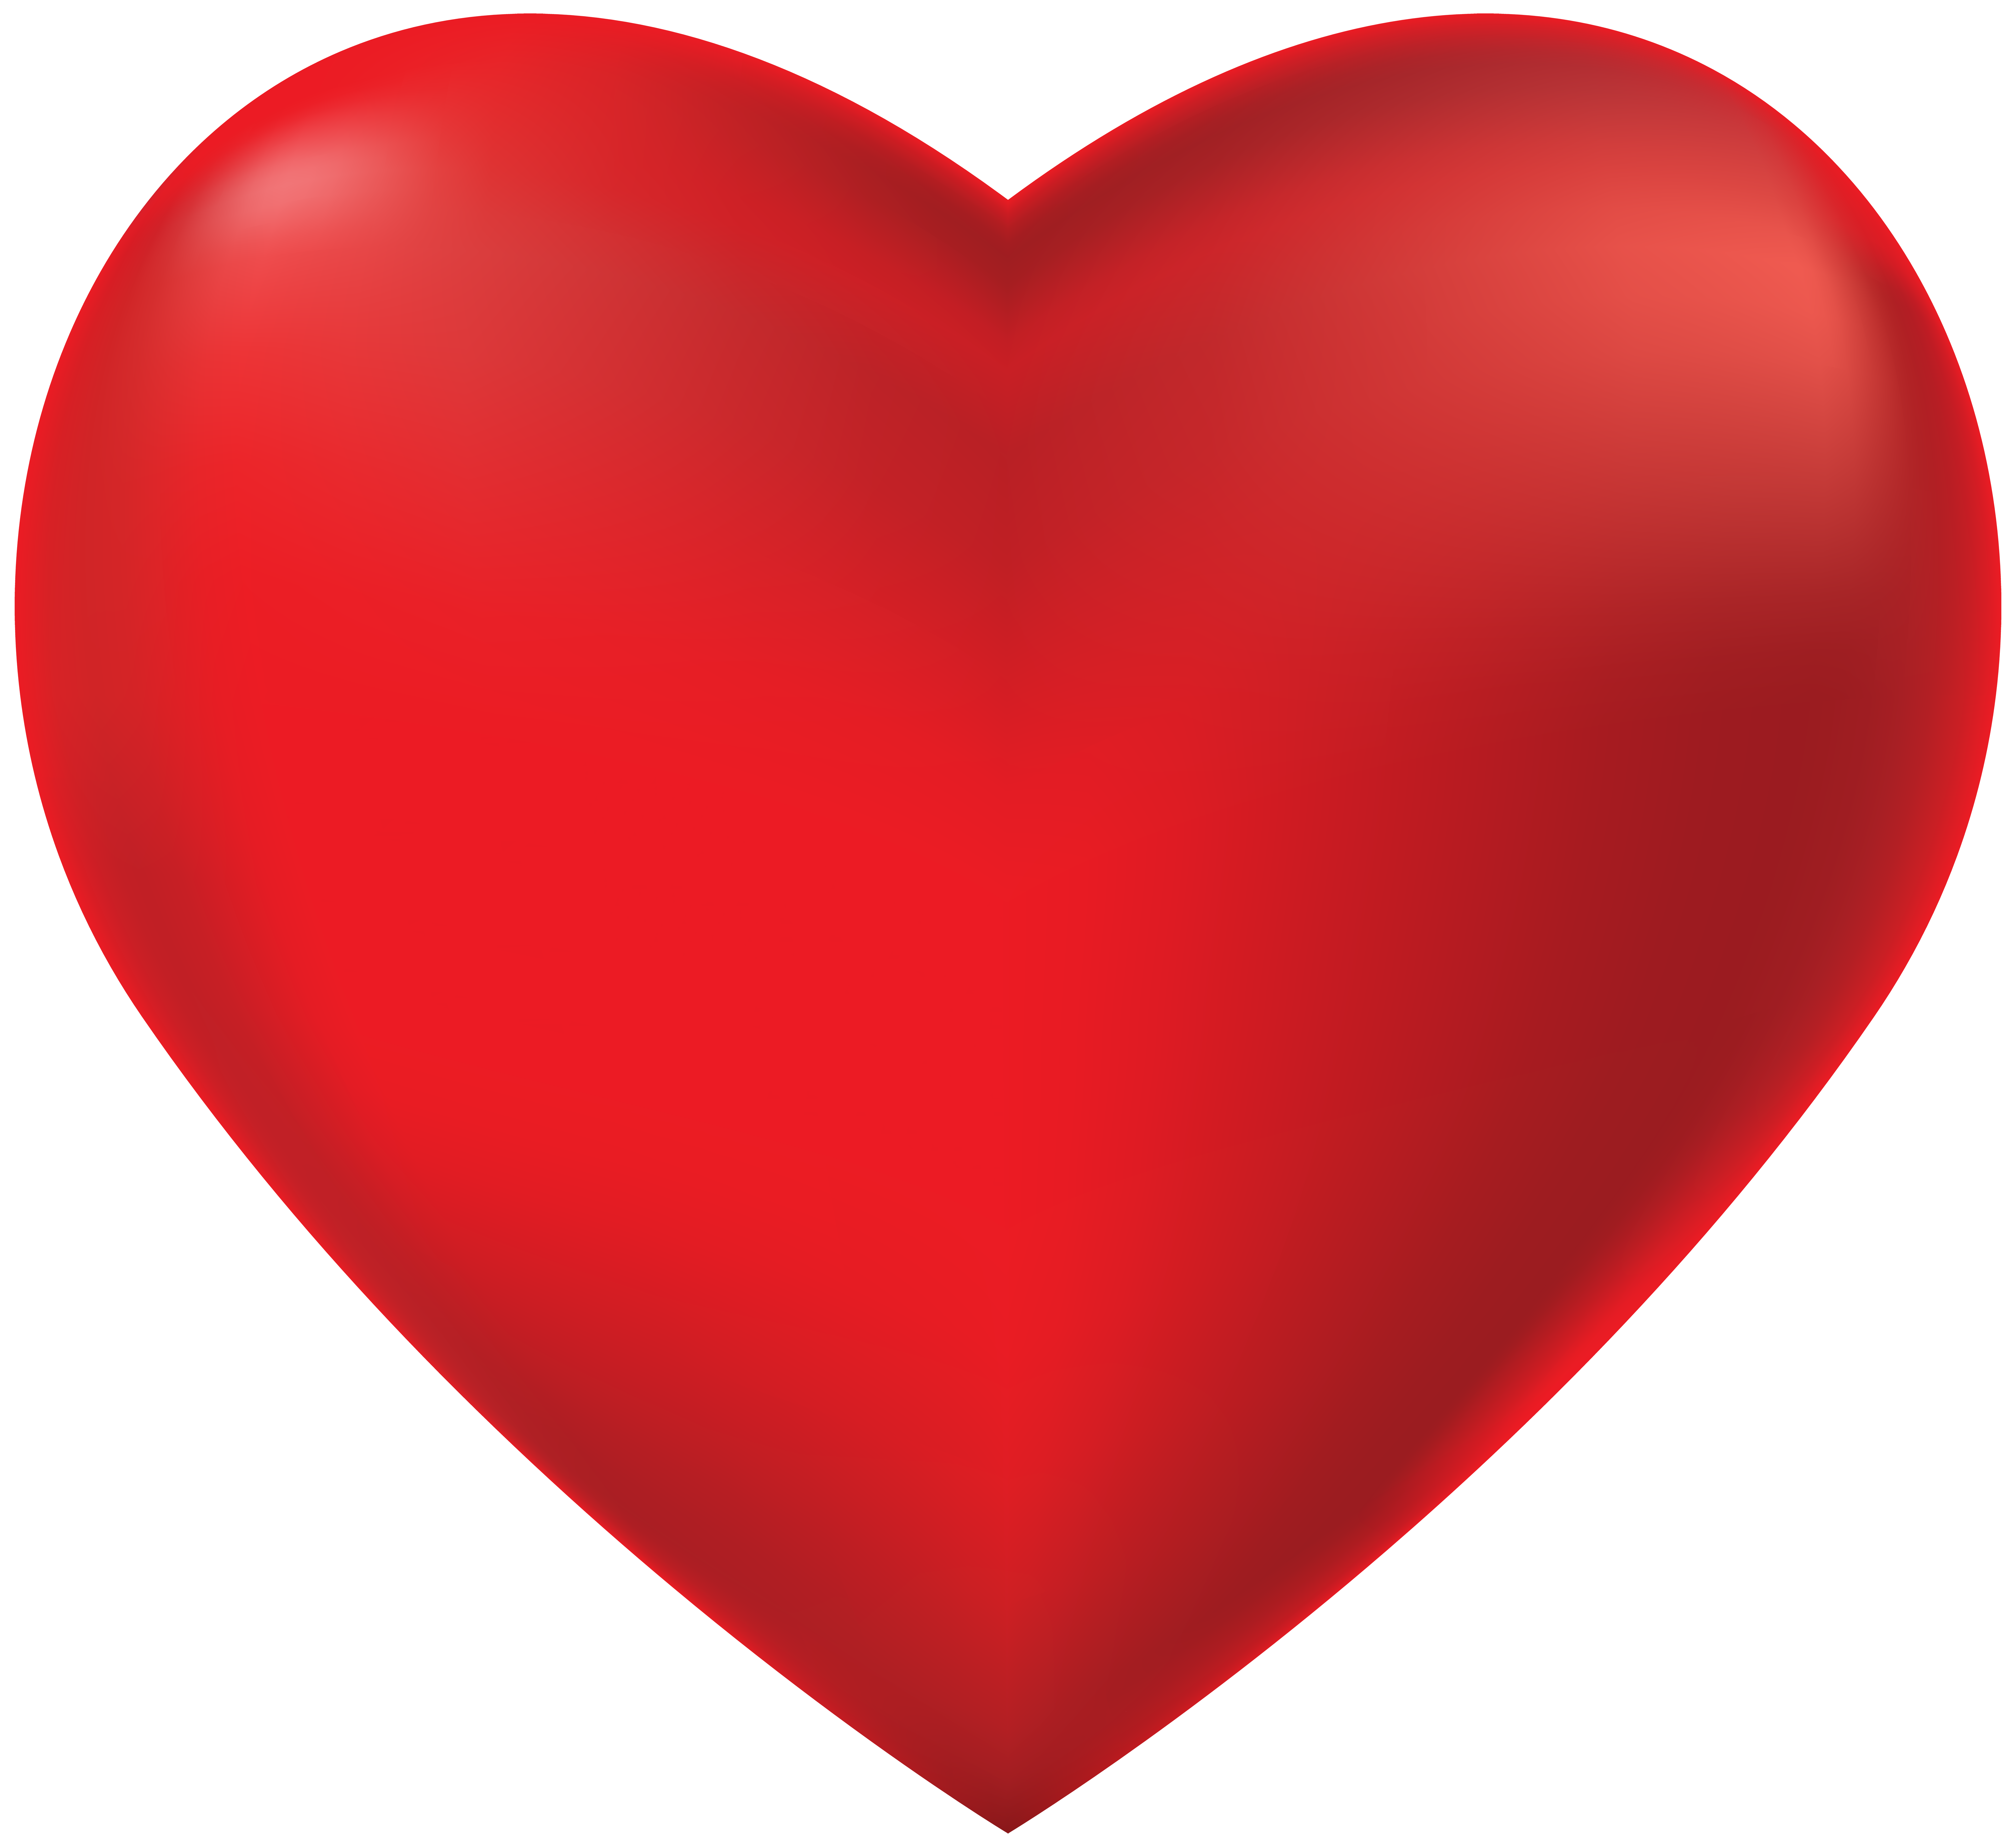 Hearts clipart icon. Heart red symbol transparent